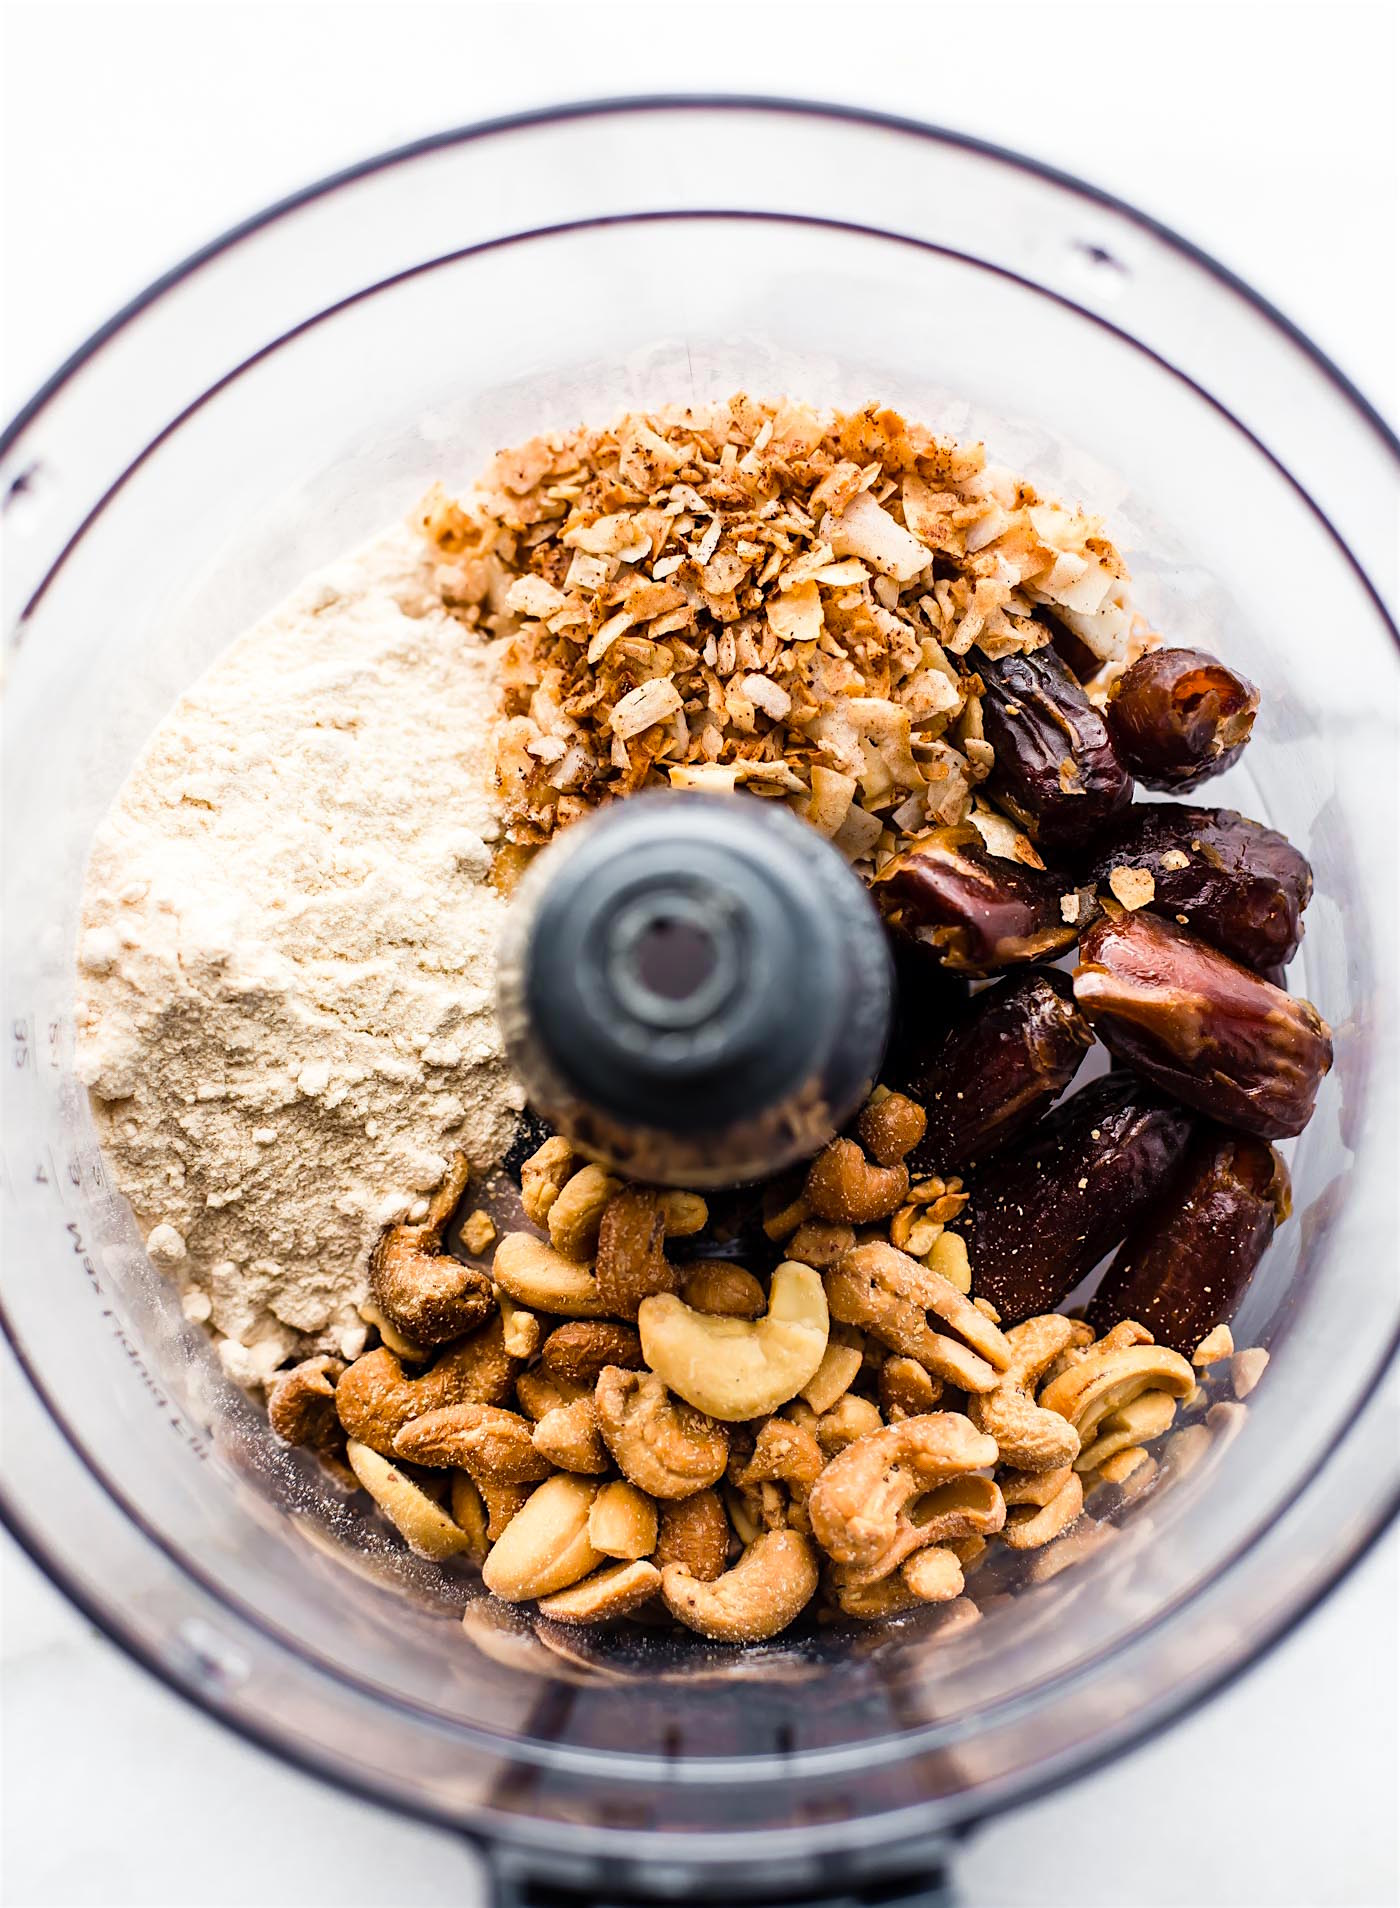 ingredients in a food processor to make healthy bliss balls with cinnamon toasted coconut and cashews